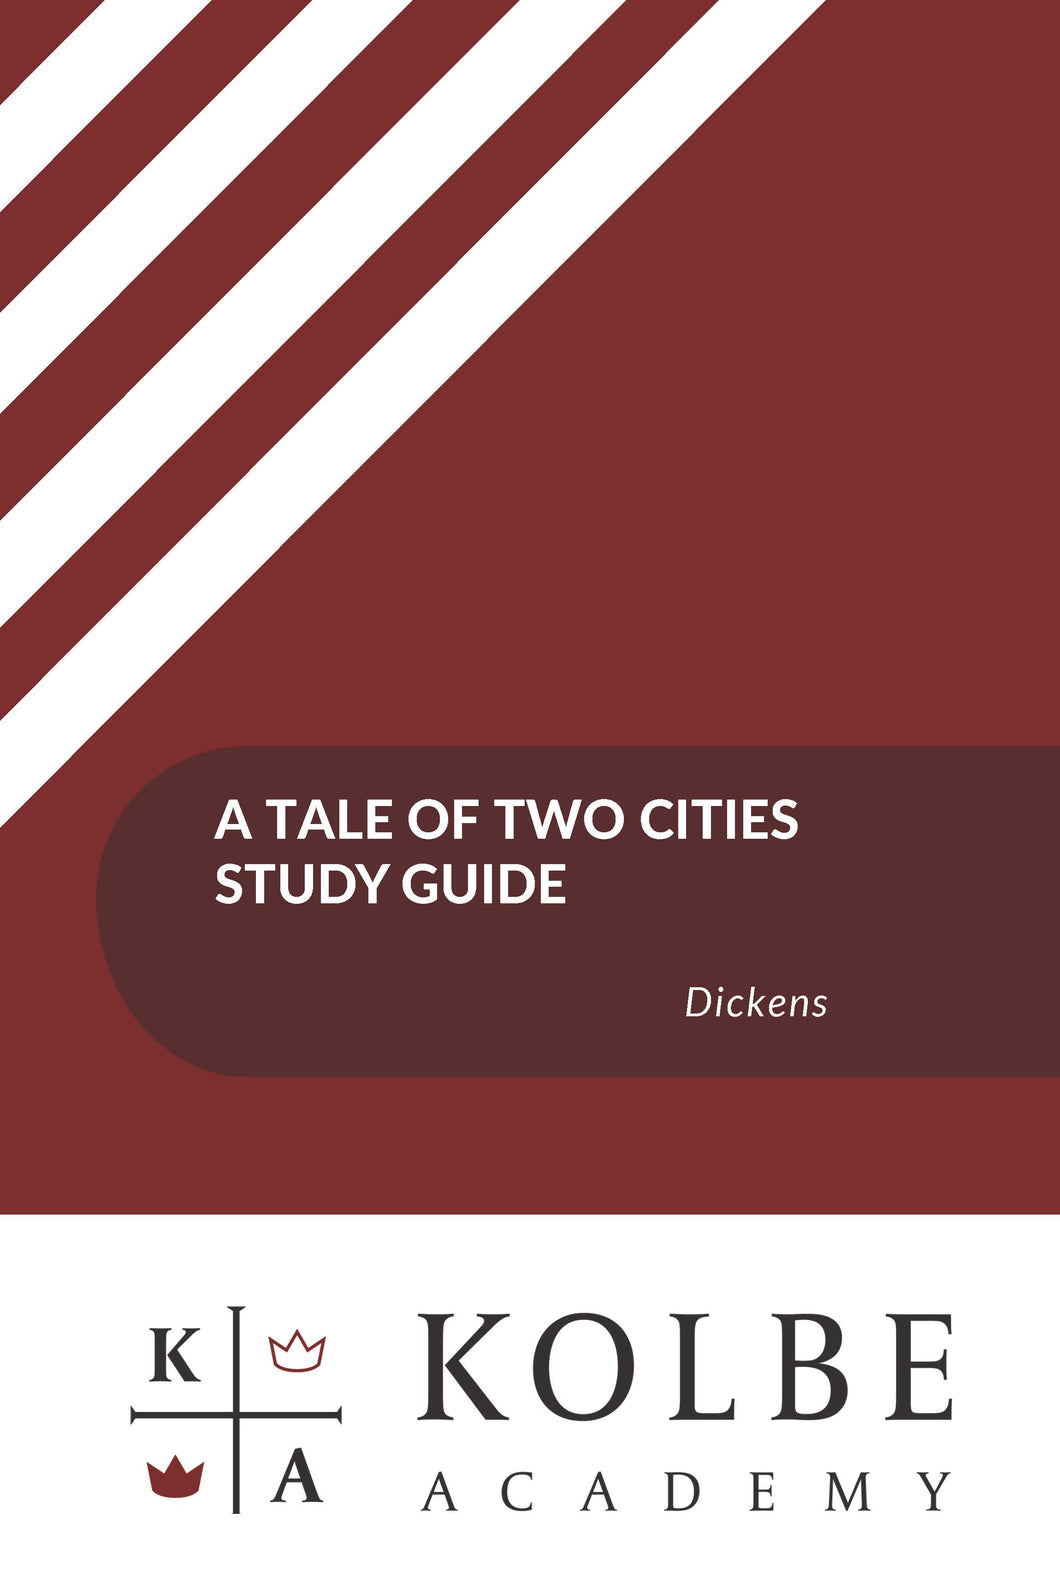 a tale of two cities book 2 study guide answers